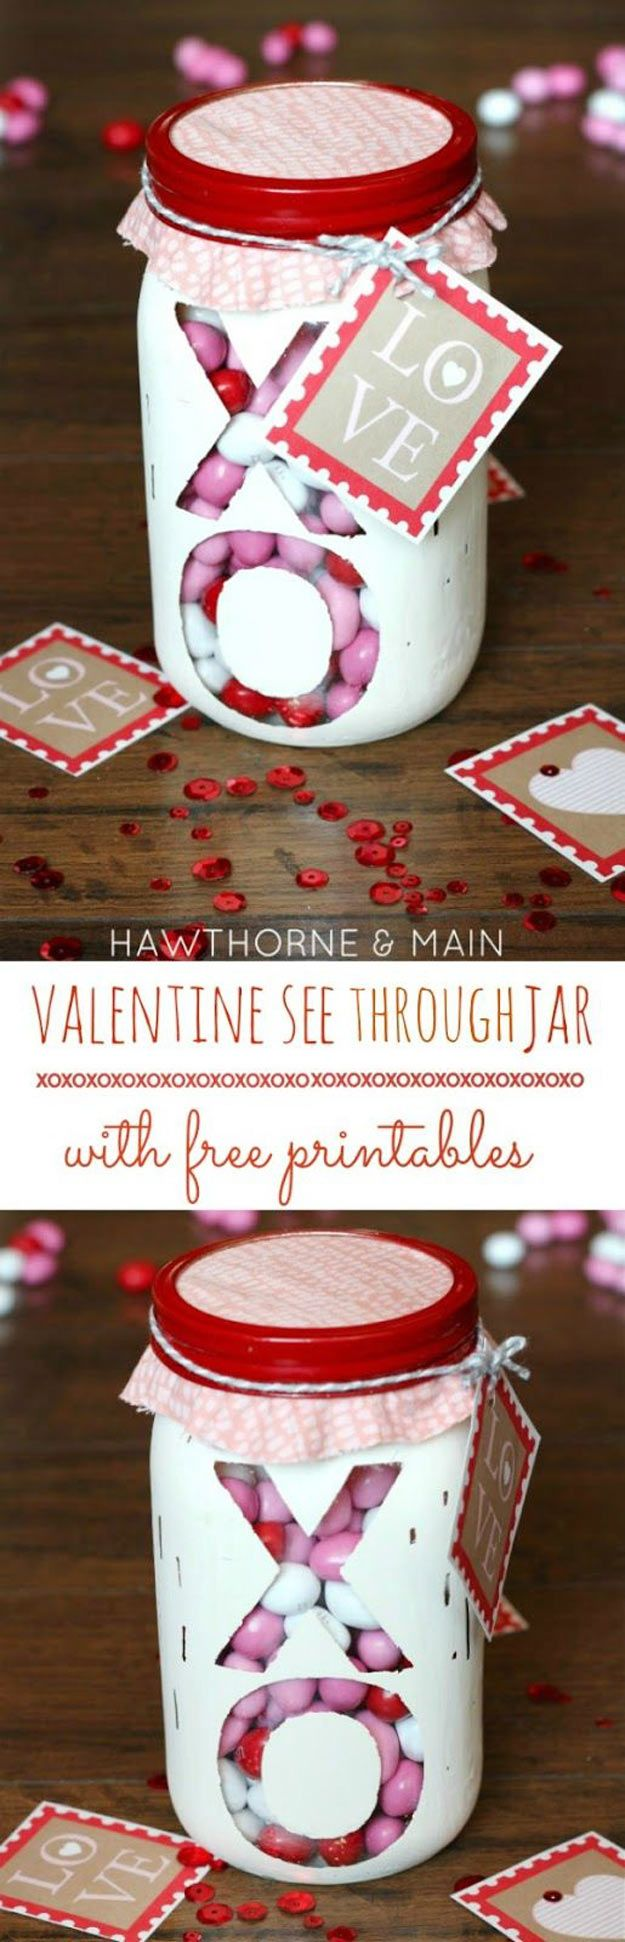 diy cute craft ideas for valentines day best 25 diy s gifts ideas on 8055